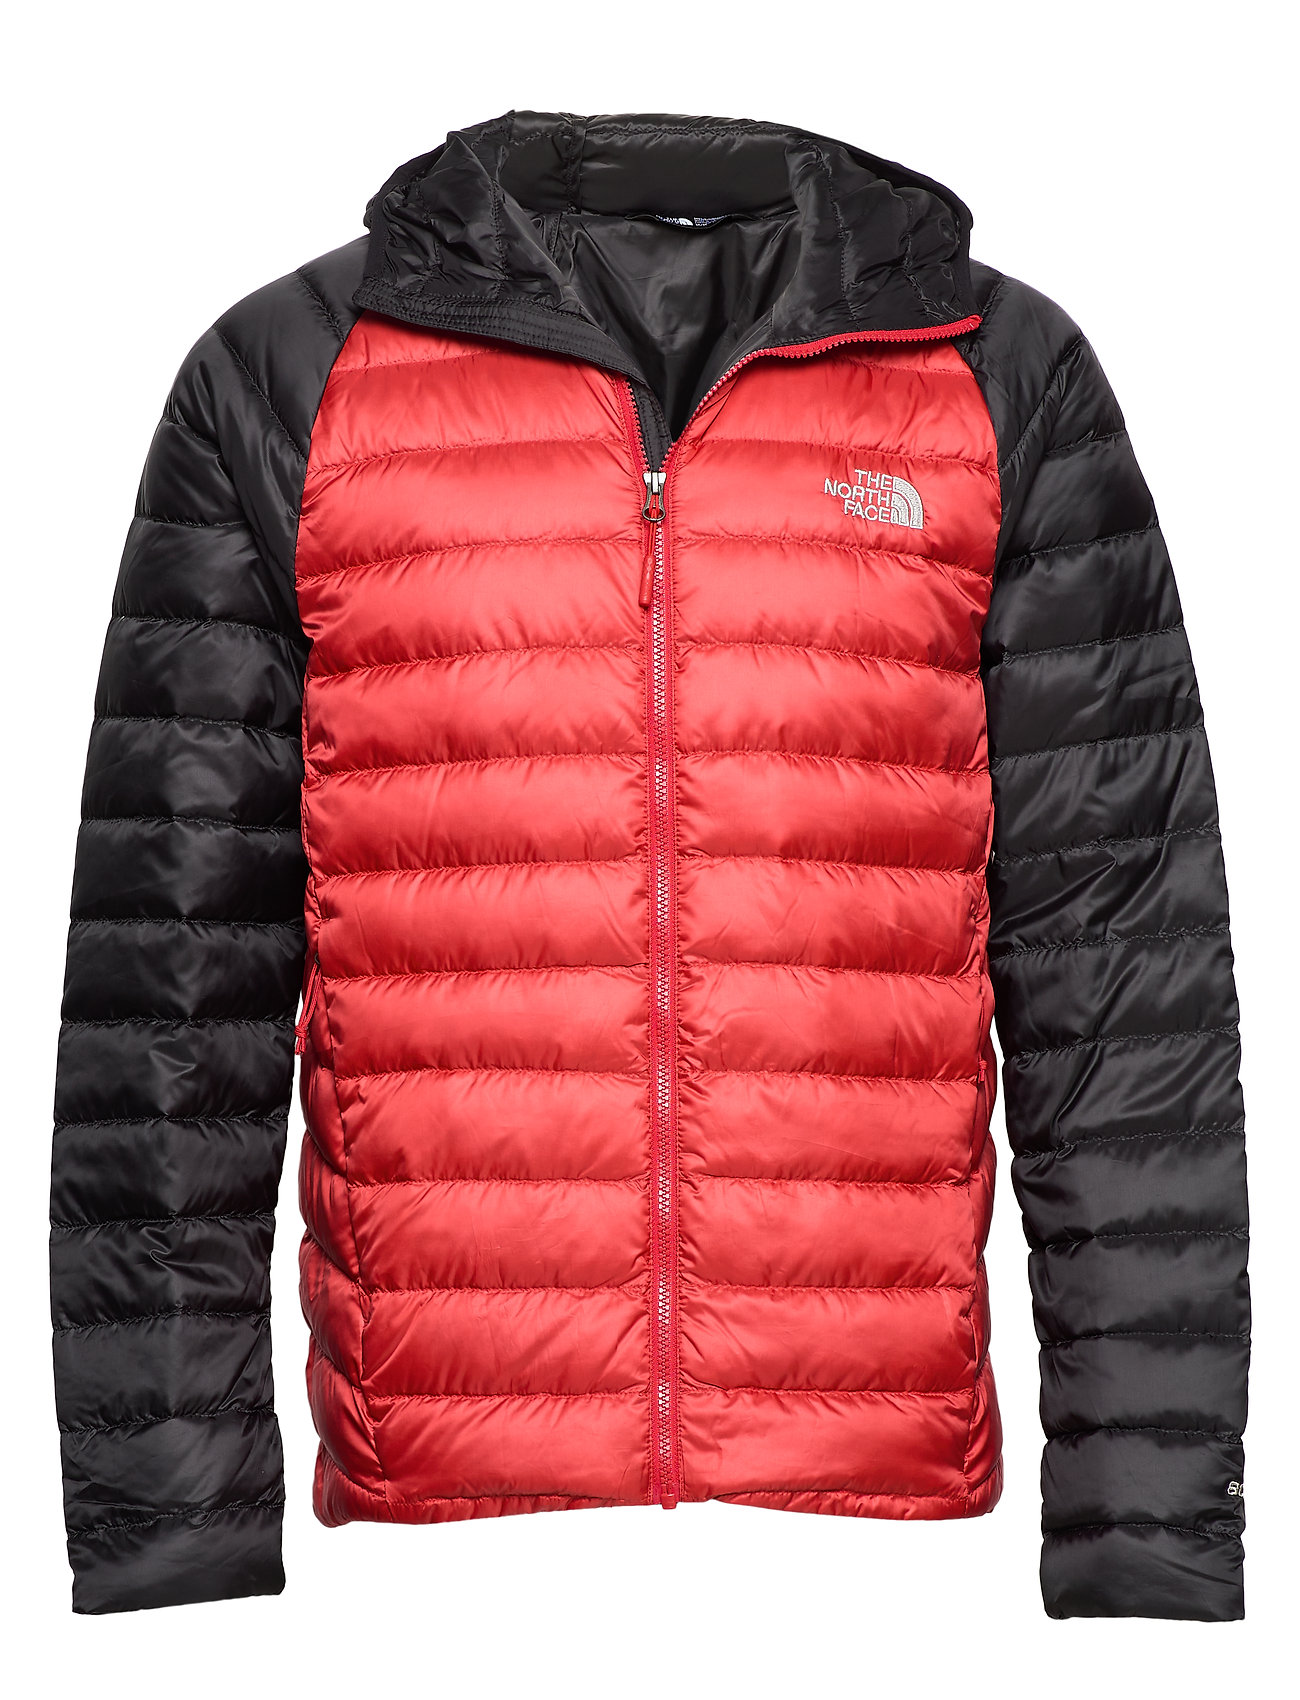 The North Face M TREVAIL HOODIE - TNF RED/TNF BLA